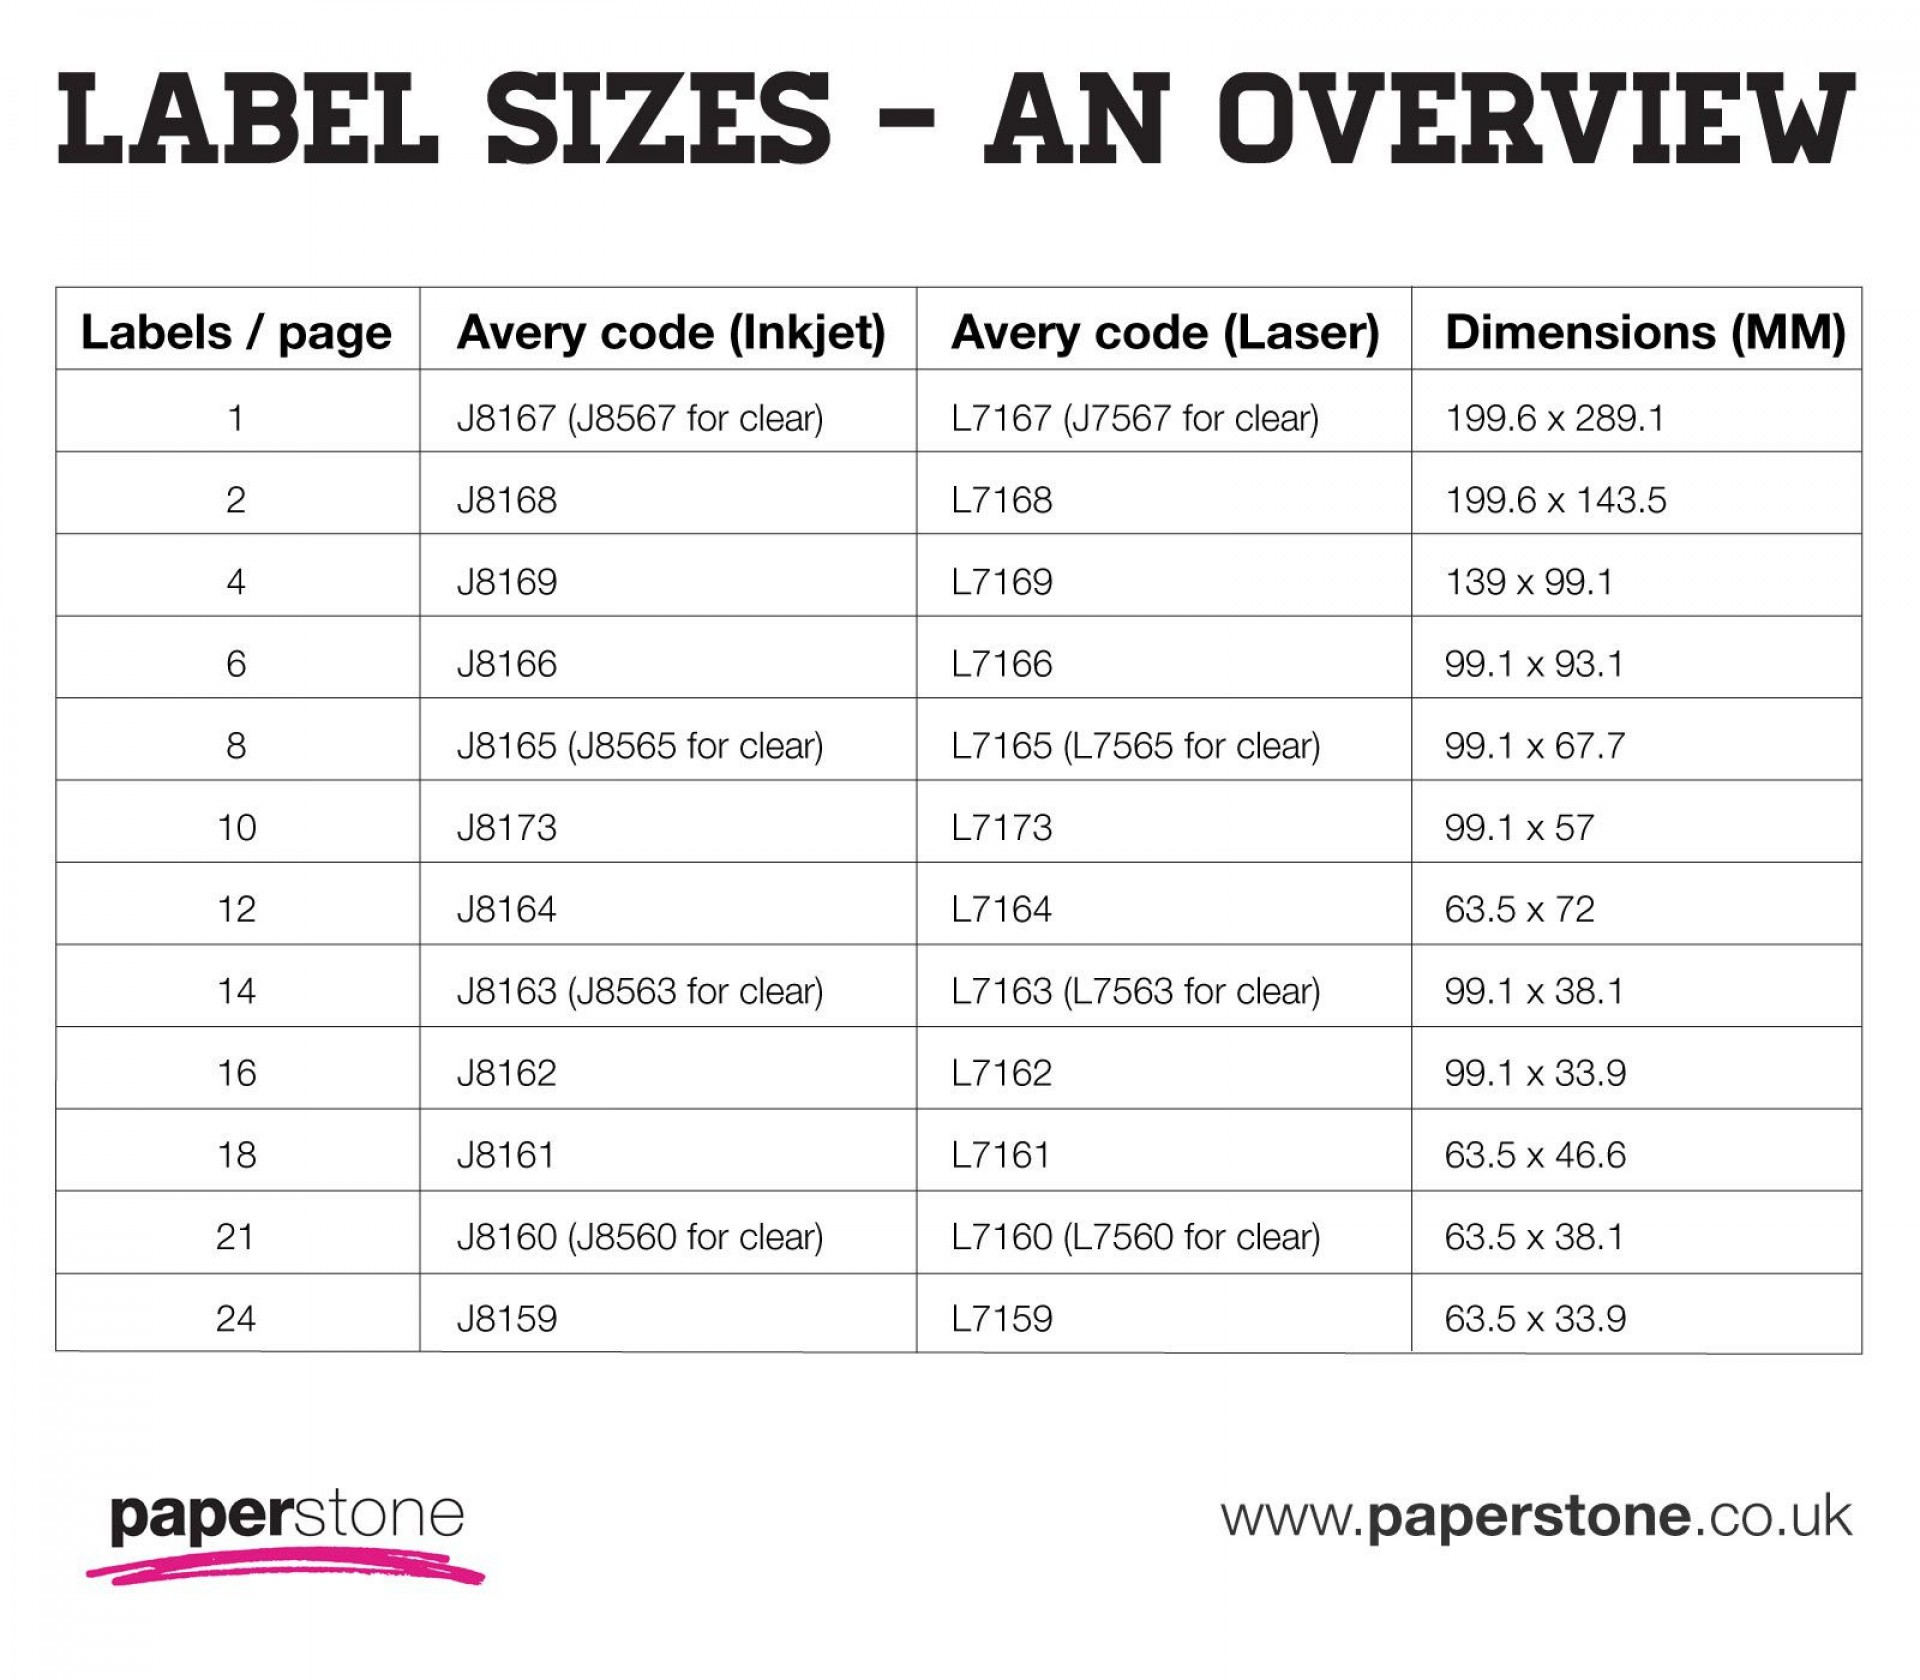 001 Archaicawful Avery Label Template In Word High Def  5164 For Mac Big Tab 8 20101920